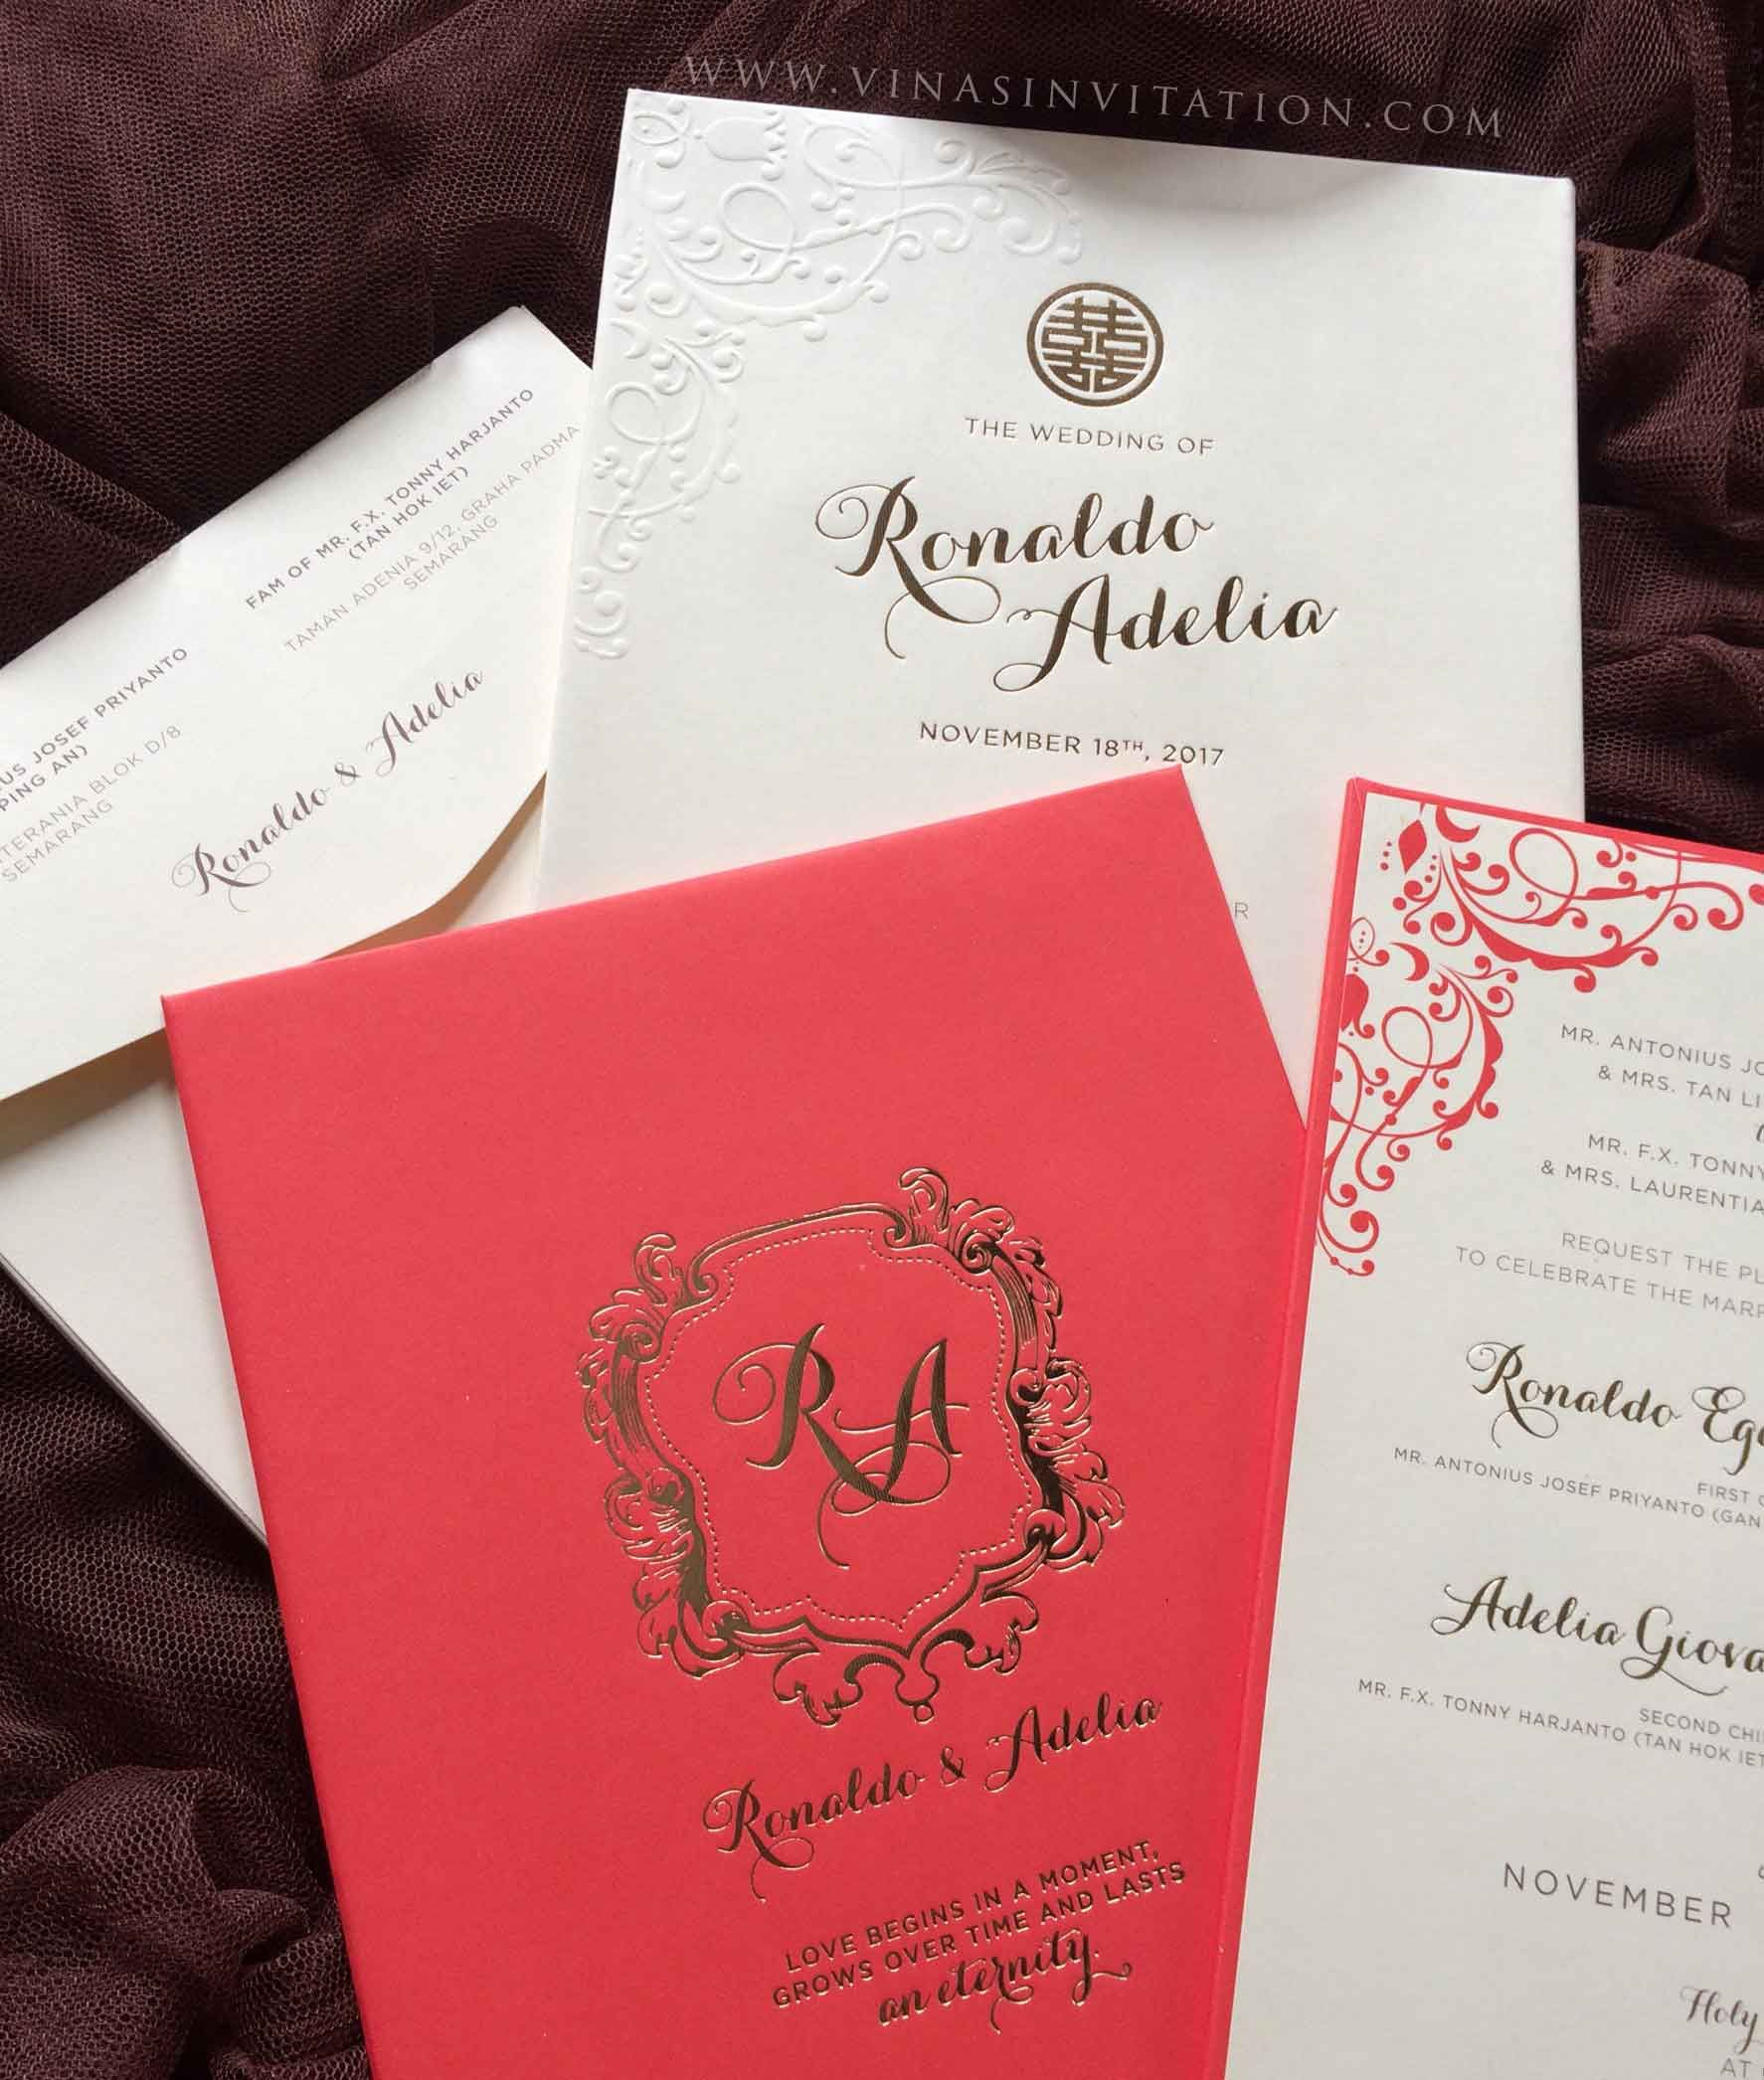 wedding invitation photo%0A vinas invitation  wedding invitation semarang  wedding invitation sydney  wedding  invitation surabaya  custom